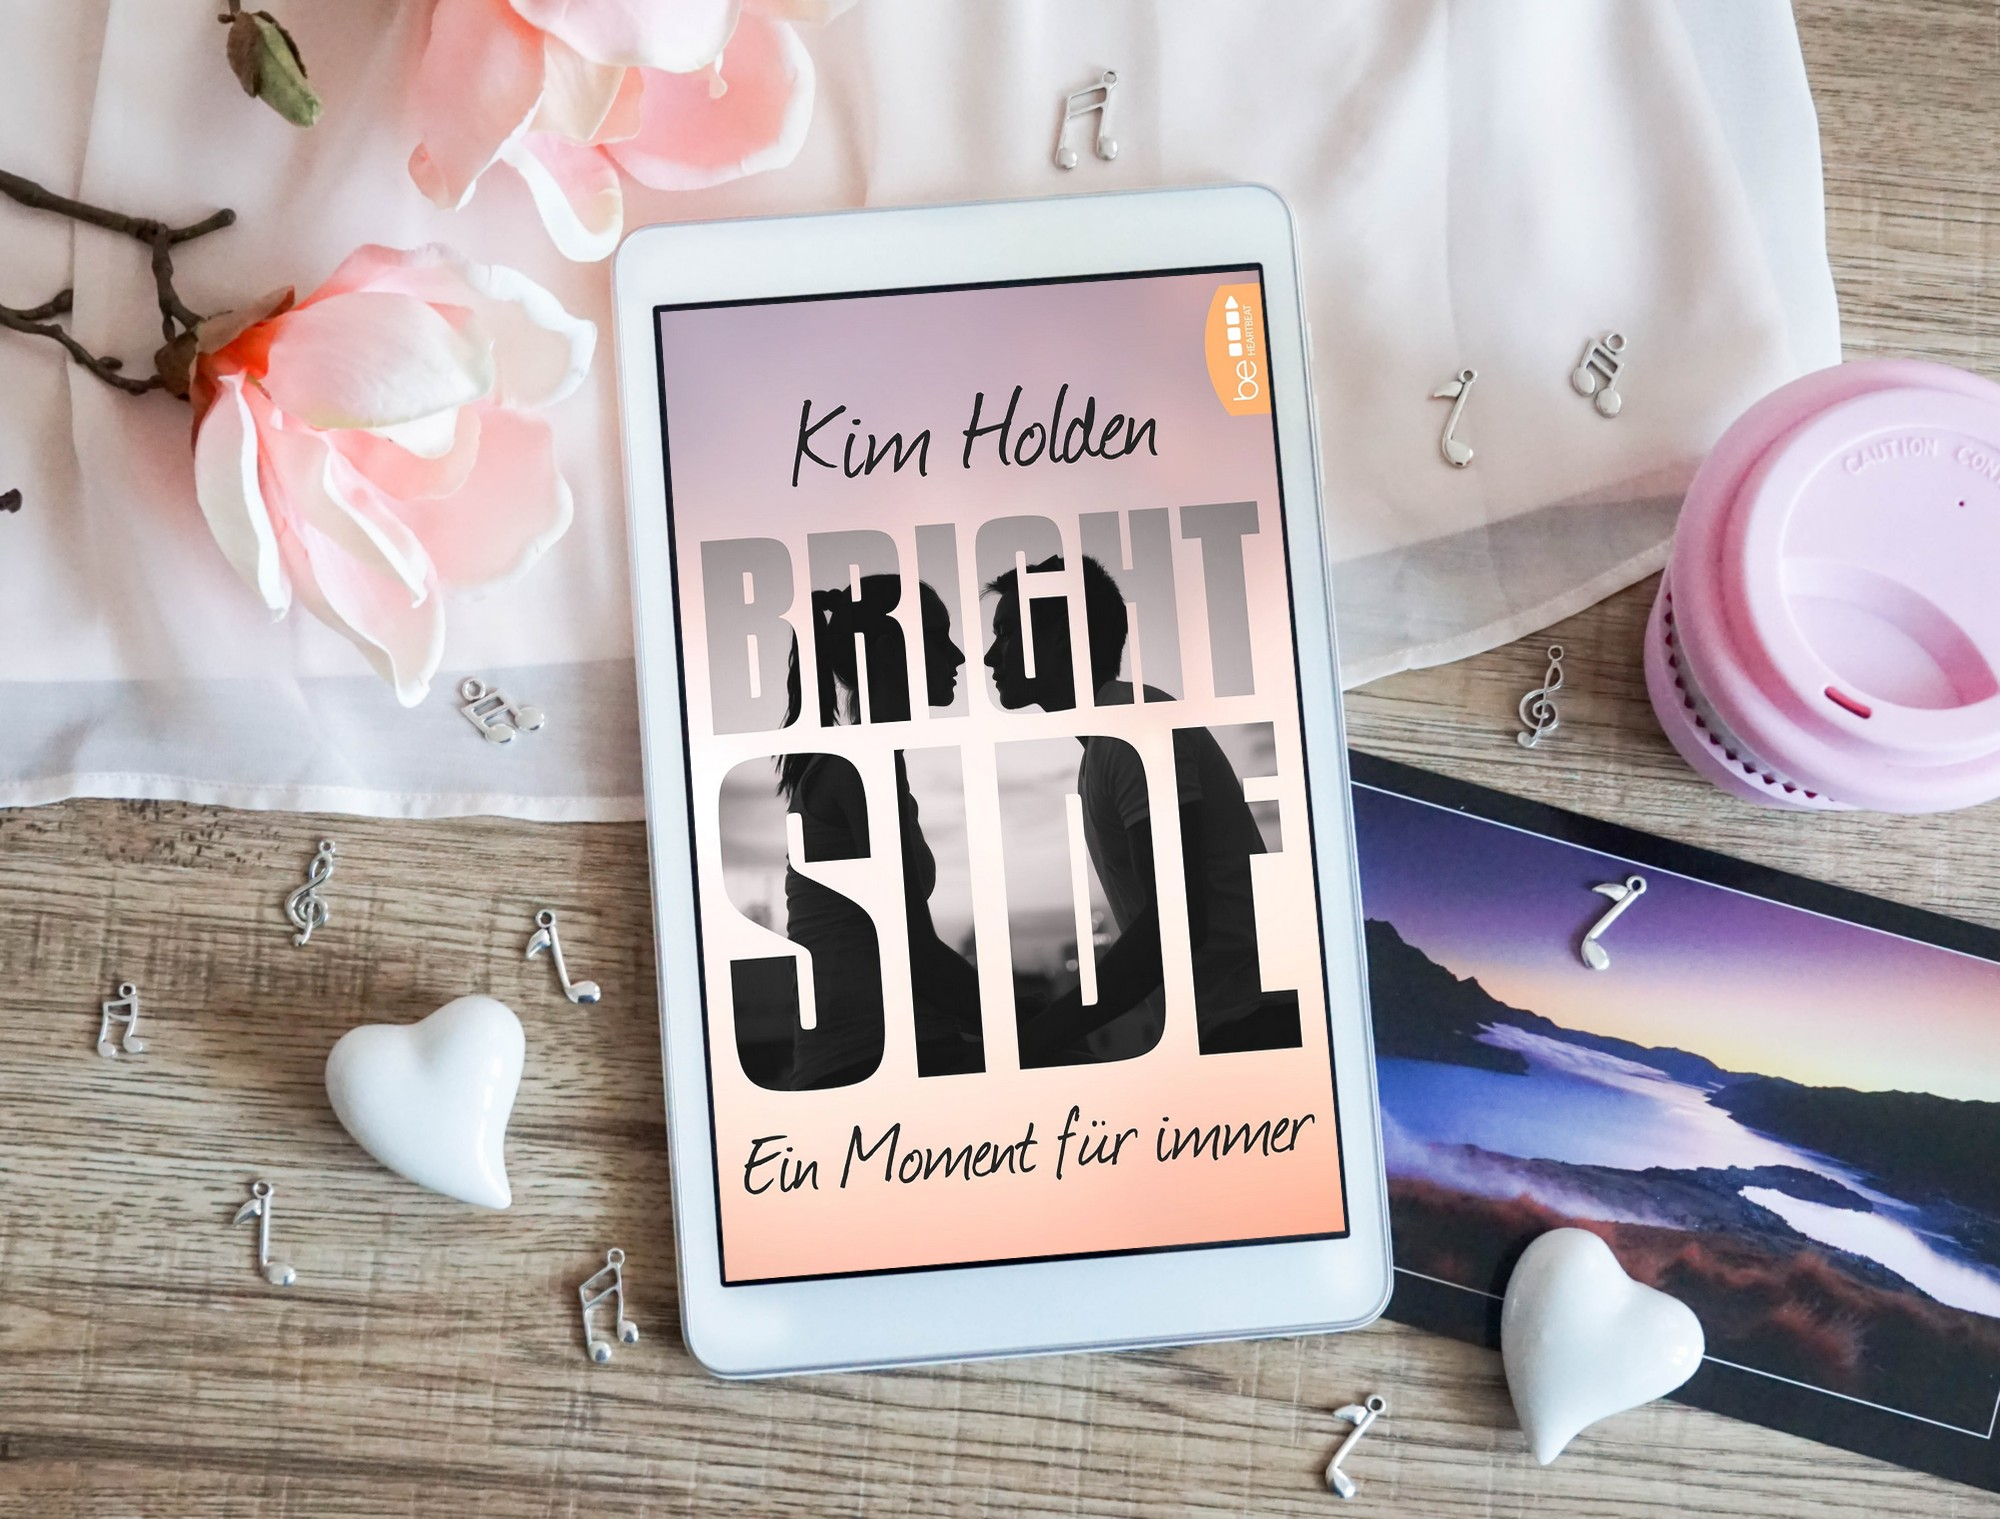 Bright Side: Ein Moment für immer – Kim Holden graphic